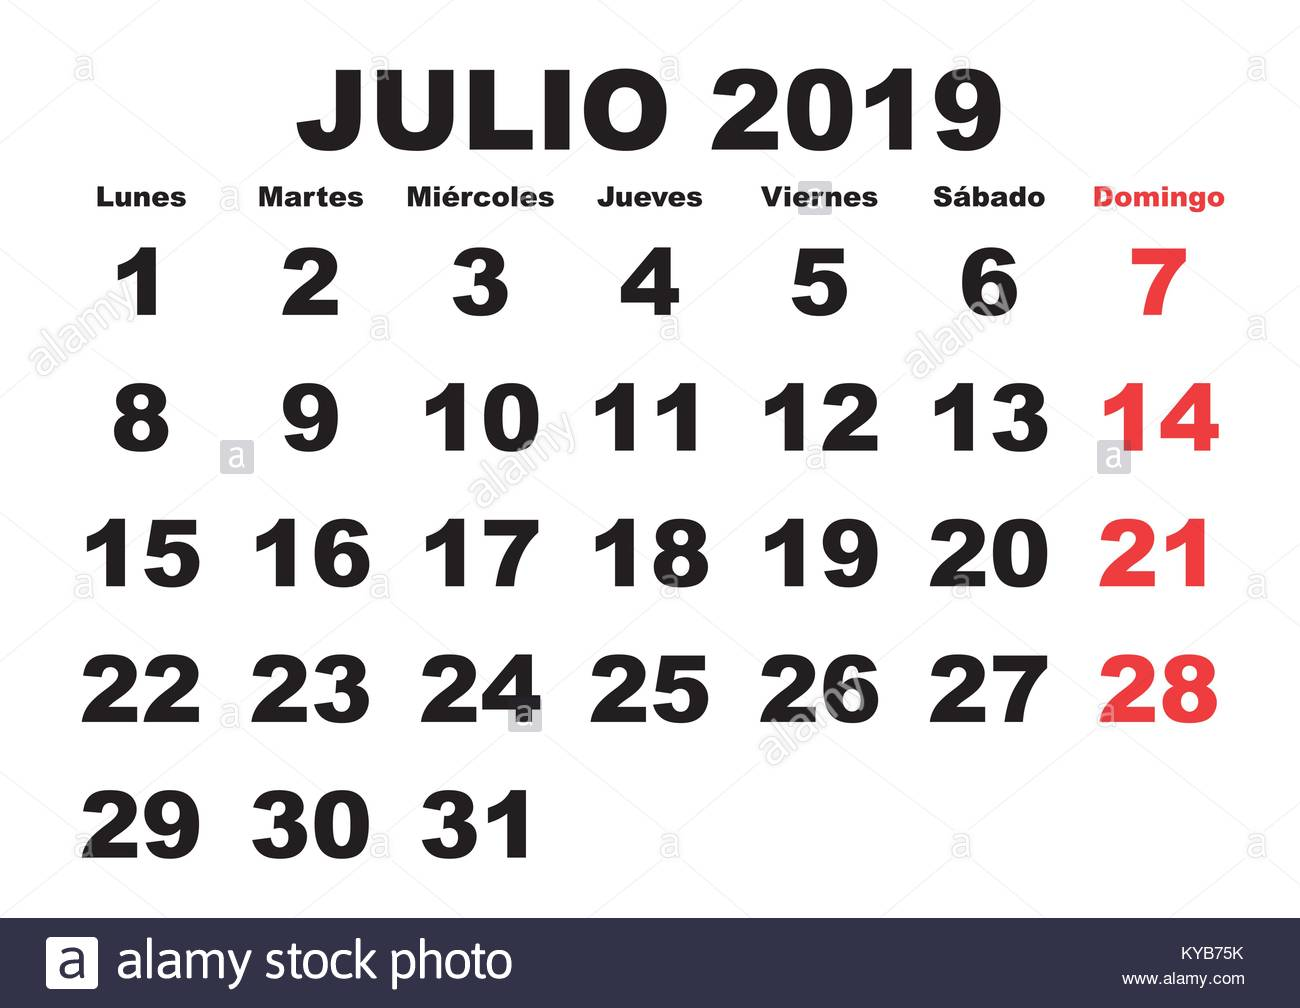 Julio 2019 Calendario.July Month In A Year 2019 Wall Calendar In Spanish Julio 2019 Stock